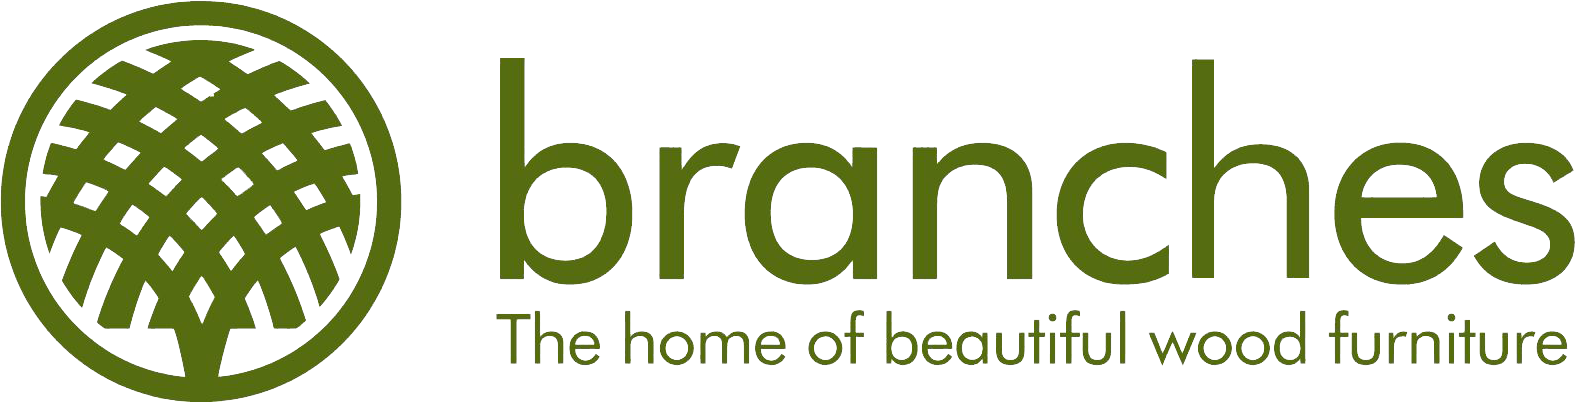 Branches of Warrington Logo